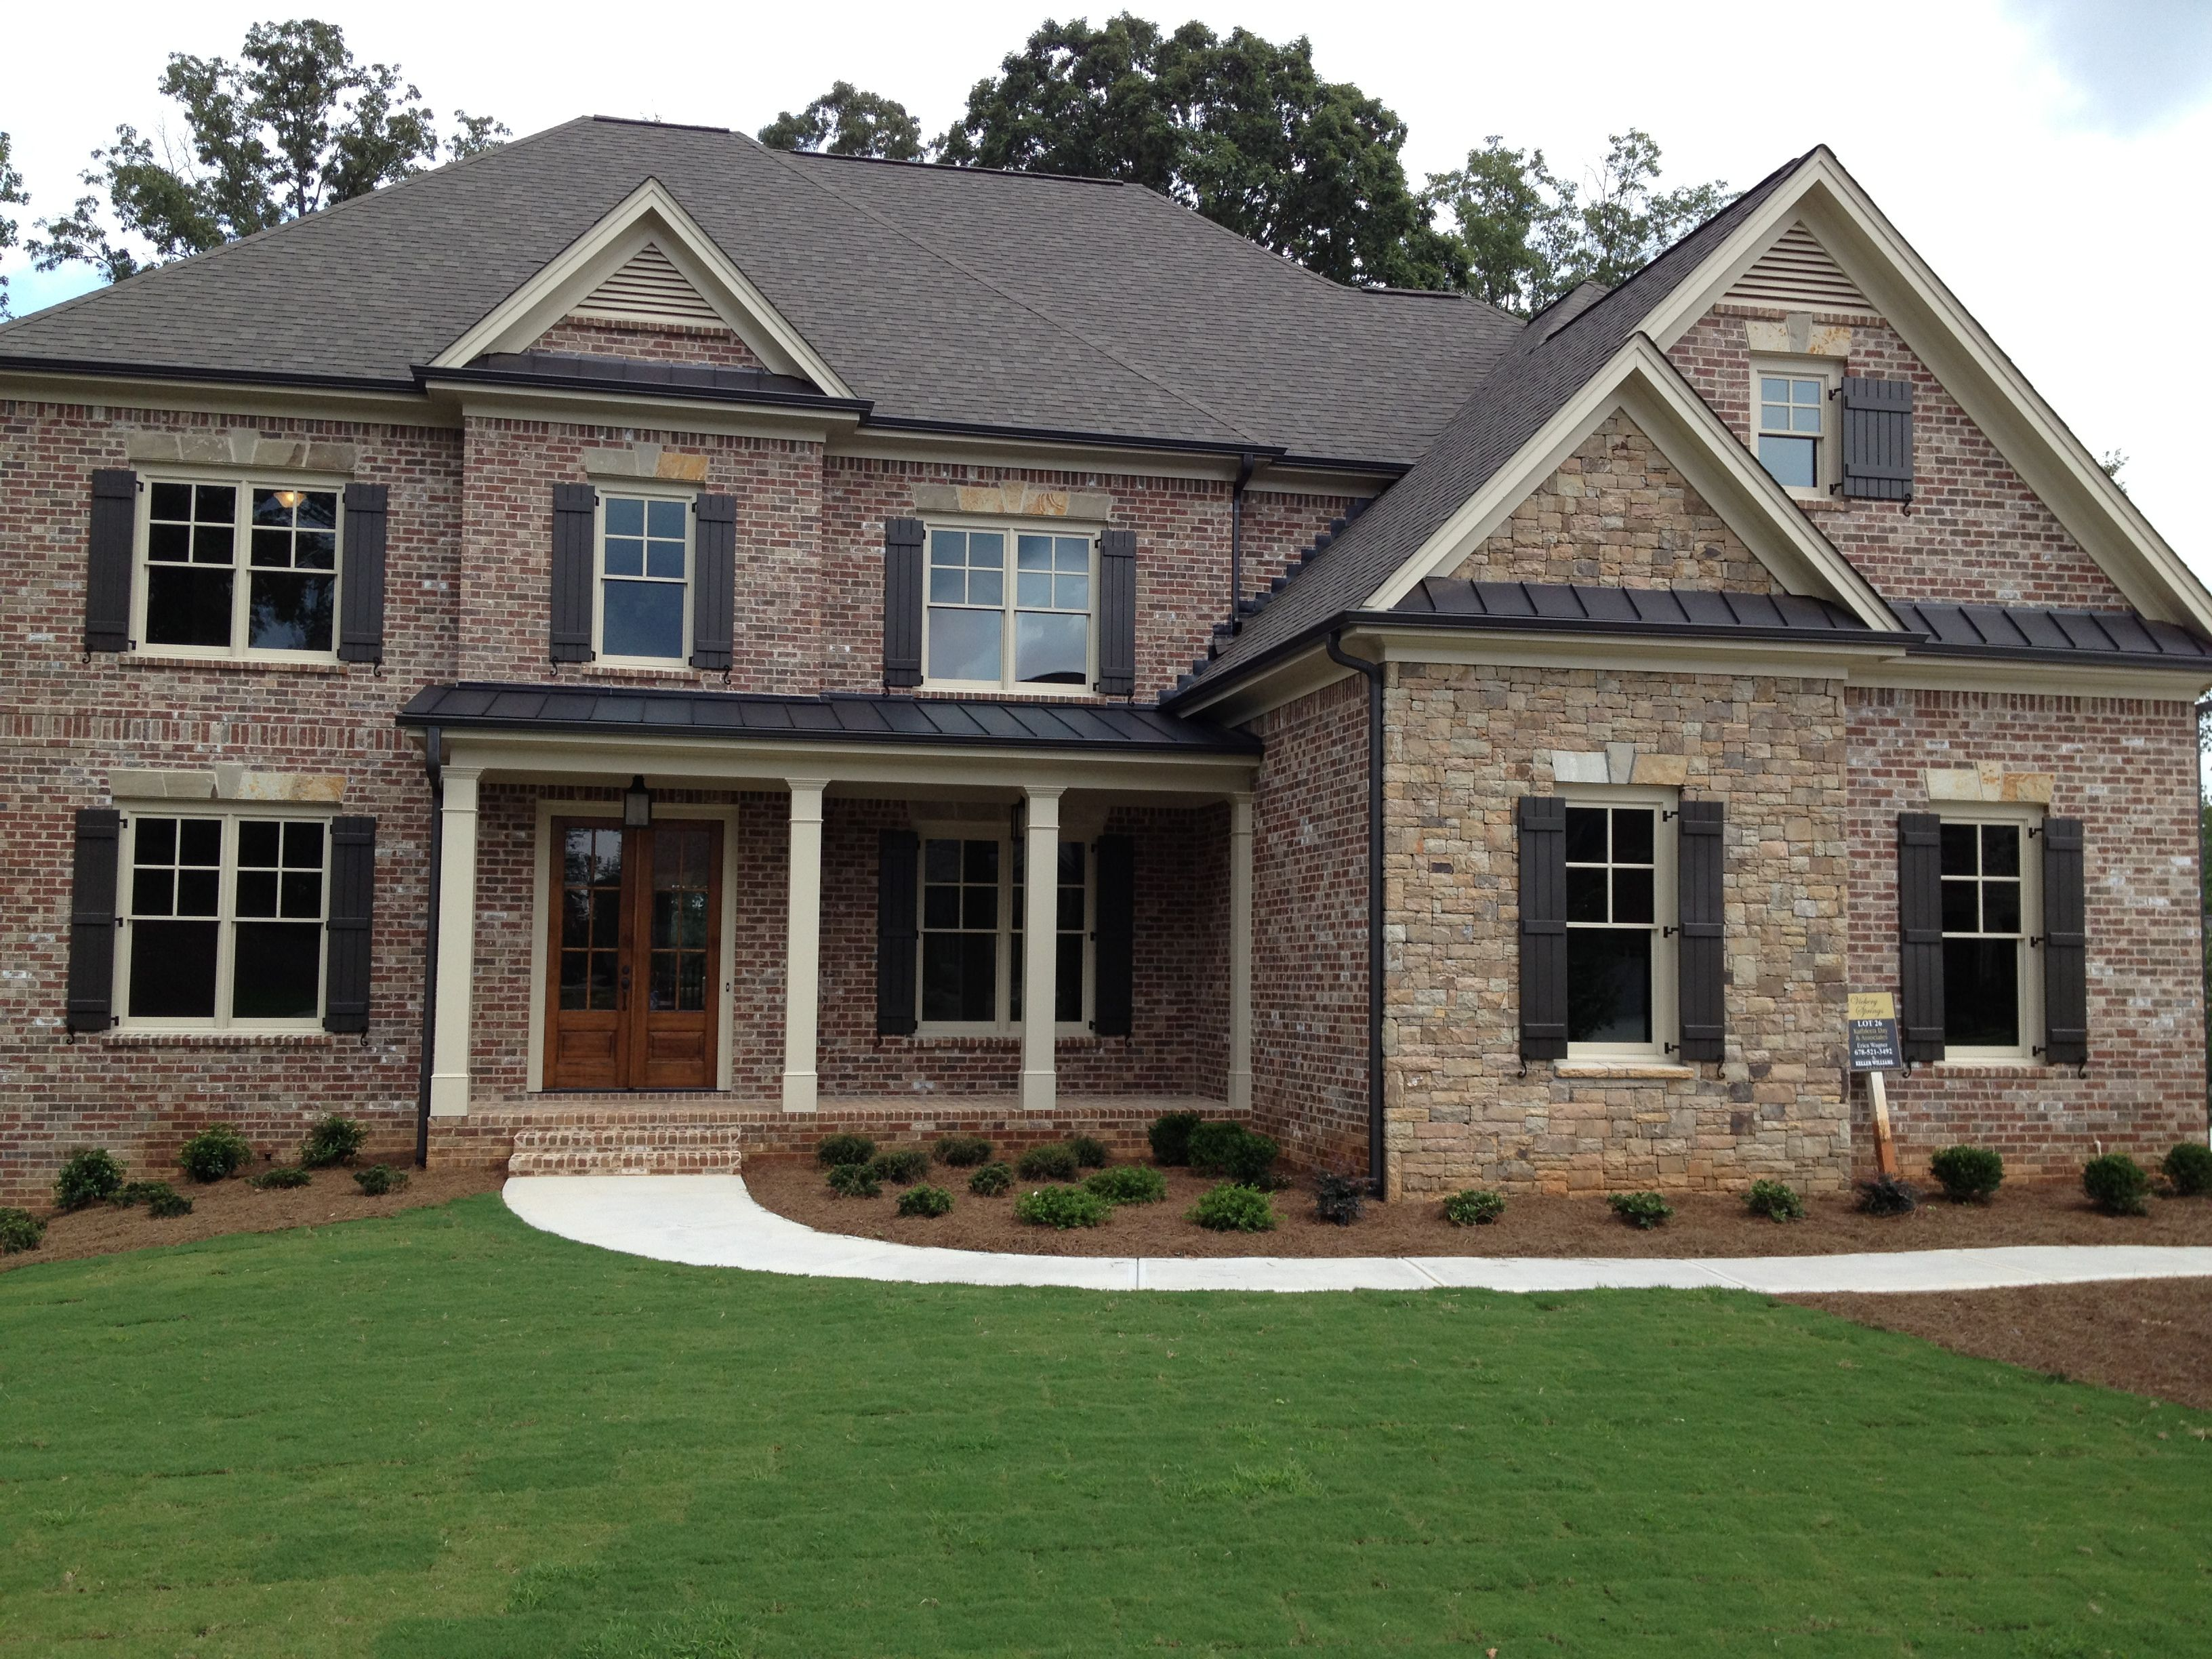 Belle Grae Anti Buff Mortar Columbus Brick In 2019 Pinterest House Design House And Home